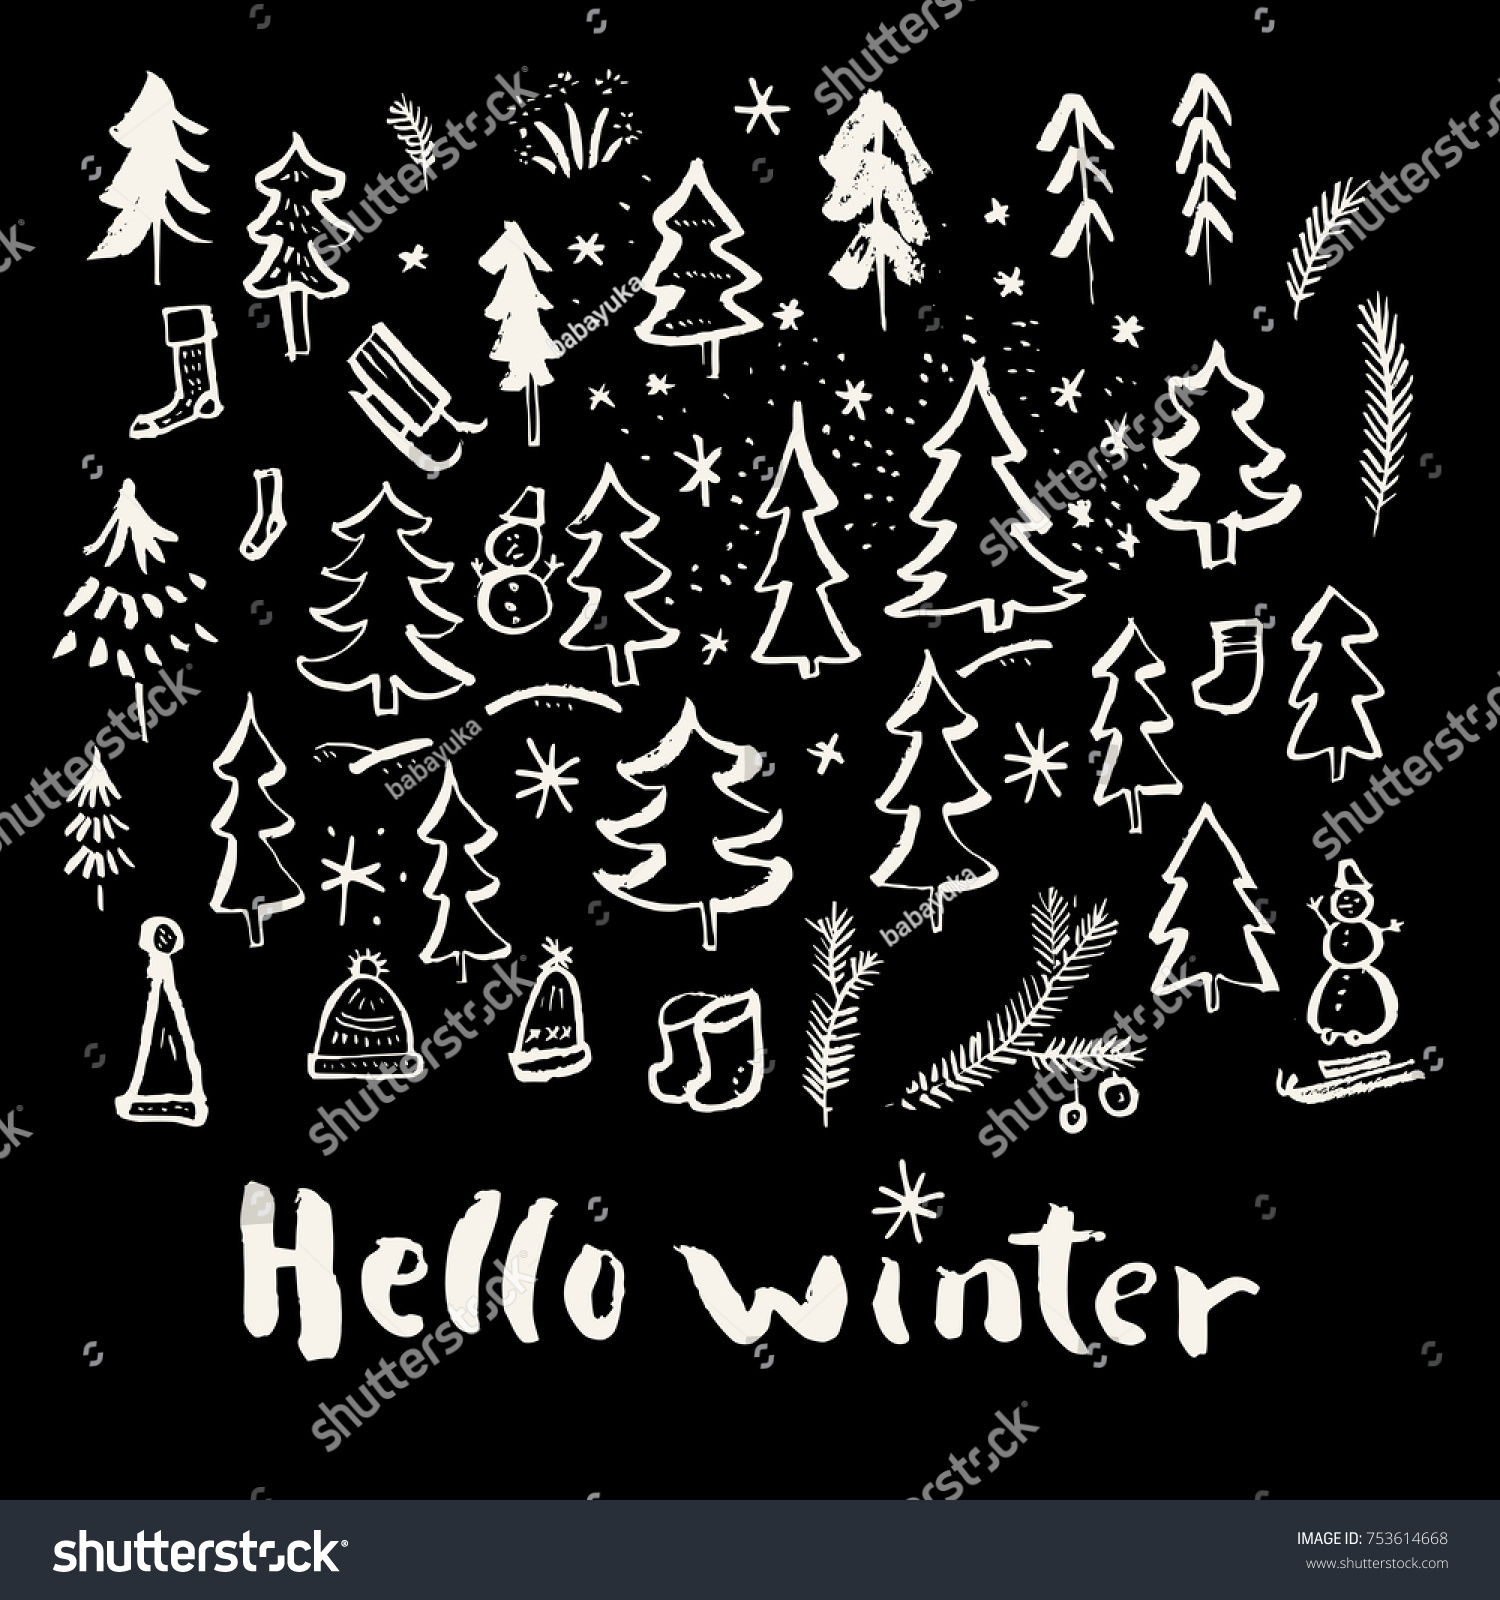 Genial Hello Winter. Merry Christmas And Holiday Season Calligraphic Hand Drawn  Greeting Card In Black And